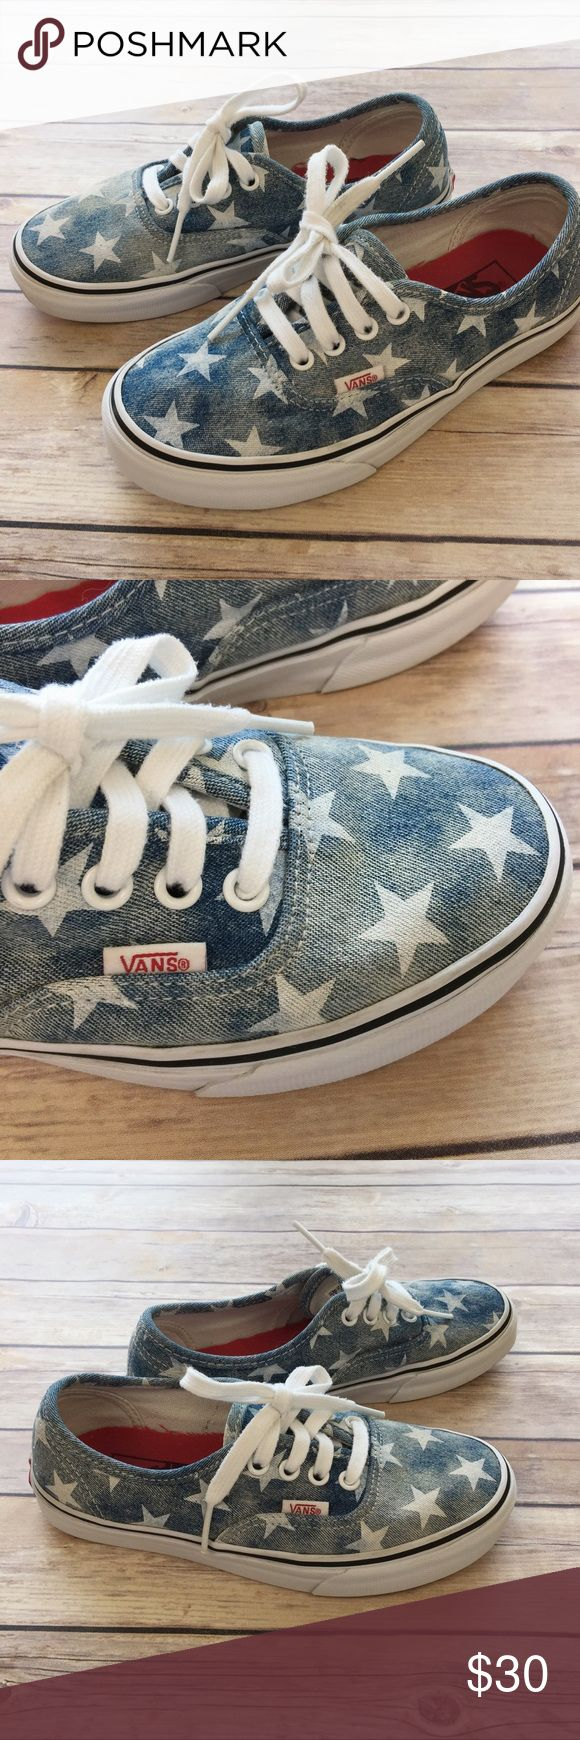 Vans: Chambray Star Vans Vans  Size:    Women's:  6.0    Men:  4.5  Chambray Star Vans in very good condition. This item has a distressed look to the chambray fabric. The chambray color is uneven and this is not a manufacturer defect, but the look of the item. There is the slightest wash wear, however they were only washed once prior to sale and on delicate.   The shoes are freshly washed and clean. There is very little wear to the soles.   I will package perfectly and with love…